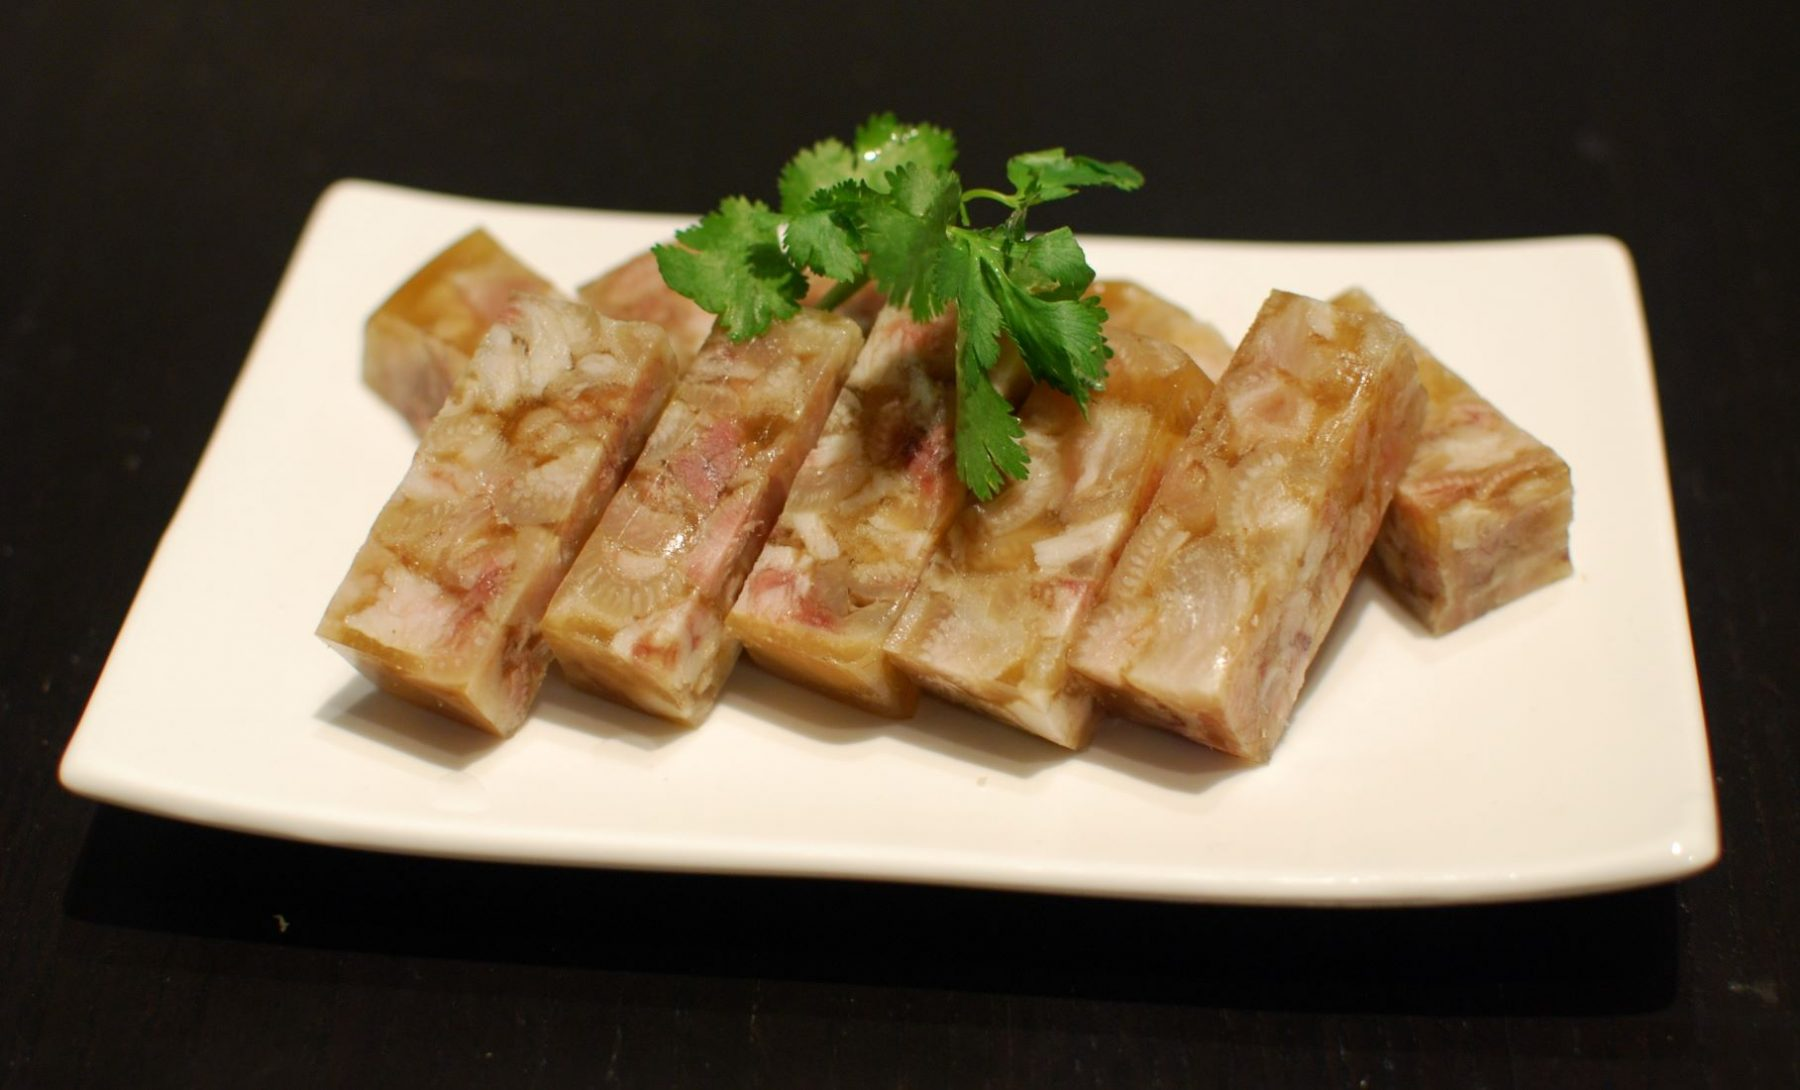 Pacha, a chilled stew (jelly) made of boiled pig head and knees